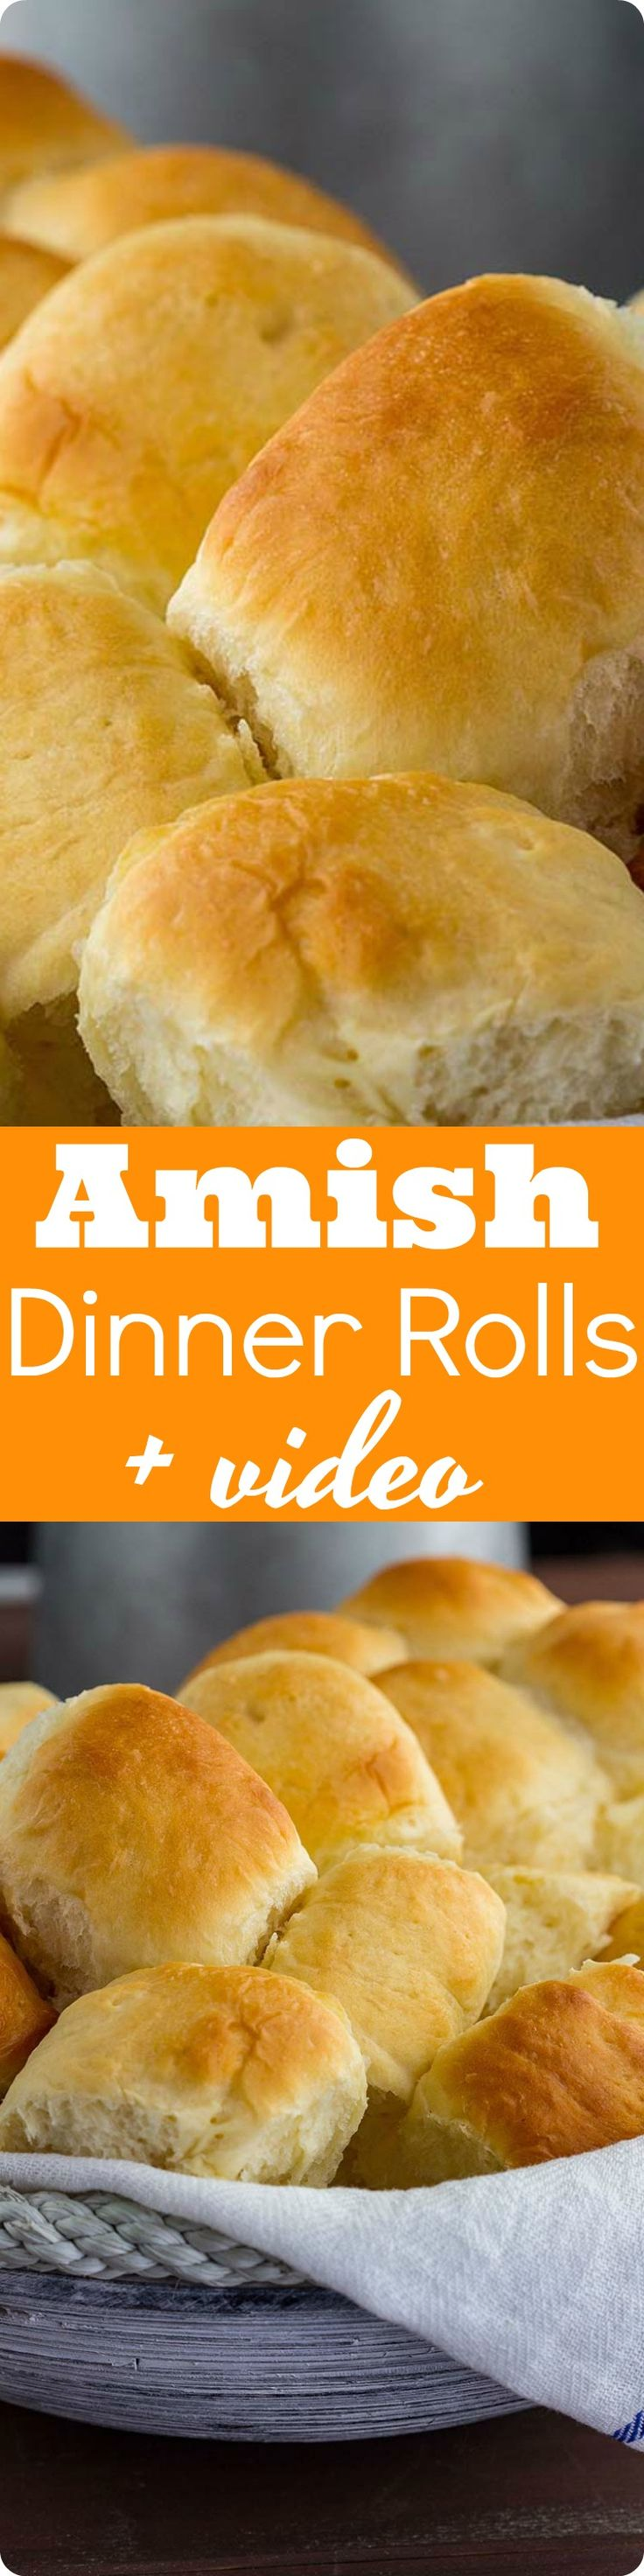 Amish Dinner Rolls   Soft yeast rolls recipe for warm fluffy buns. Made with instant mashed potato flakes, best served with any dinner comfort food. Find recipe at redstaryeast.com.